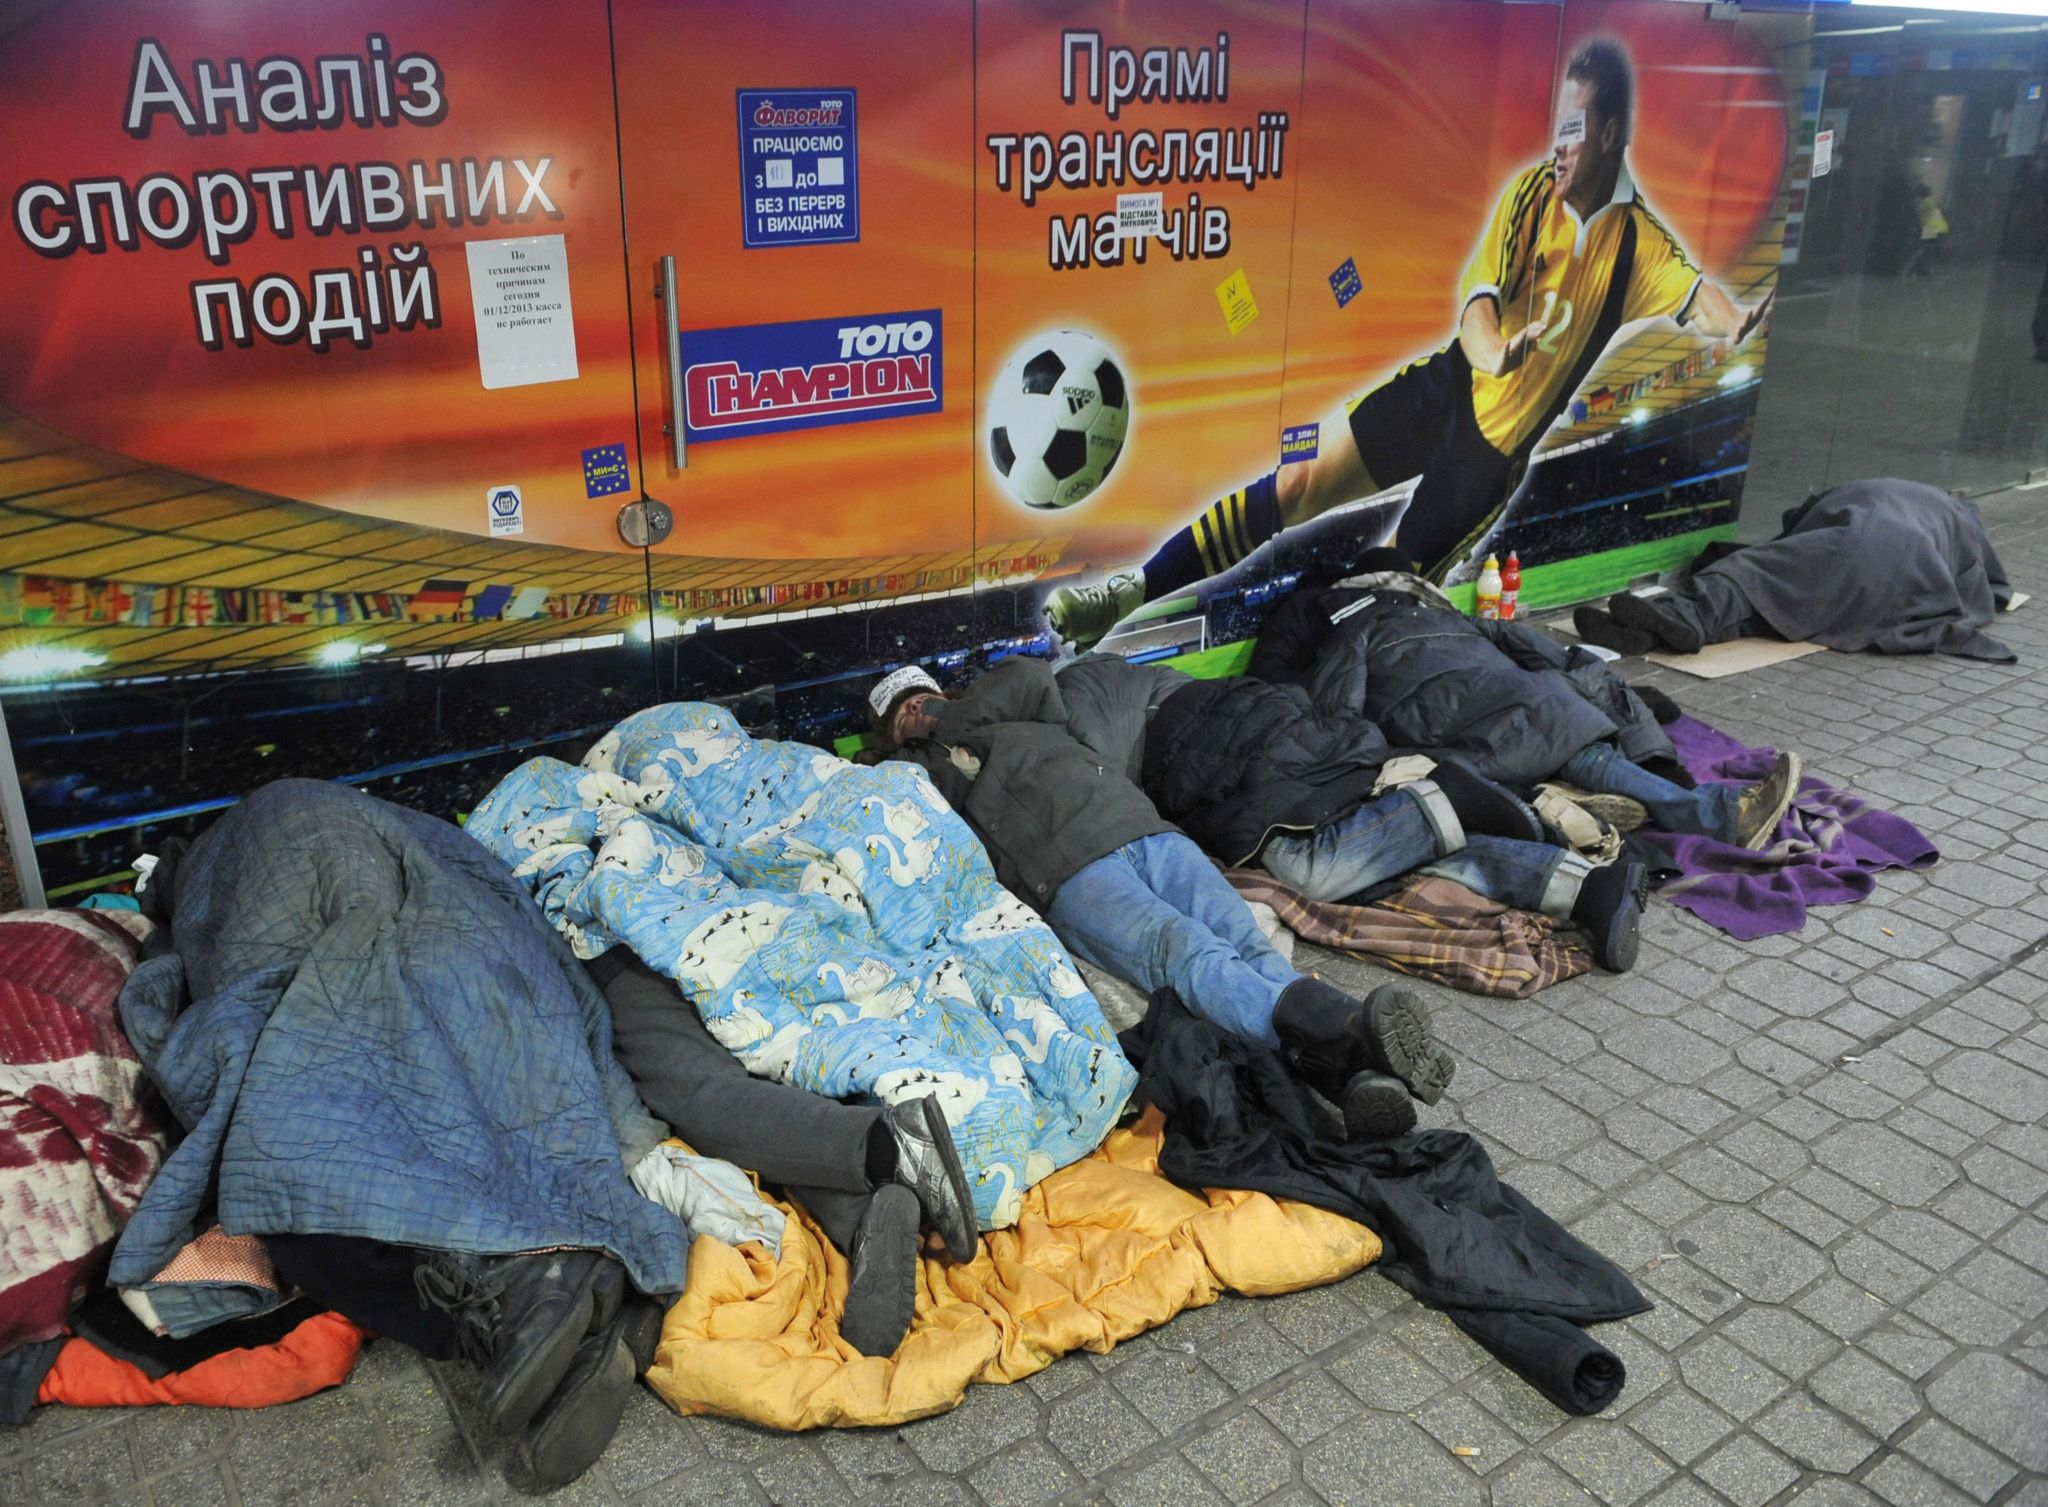 Homeless people sleeping in front of a building in Ukraine's capital Kiev on December 18, 2013.